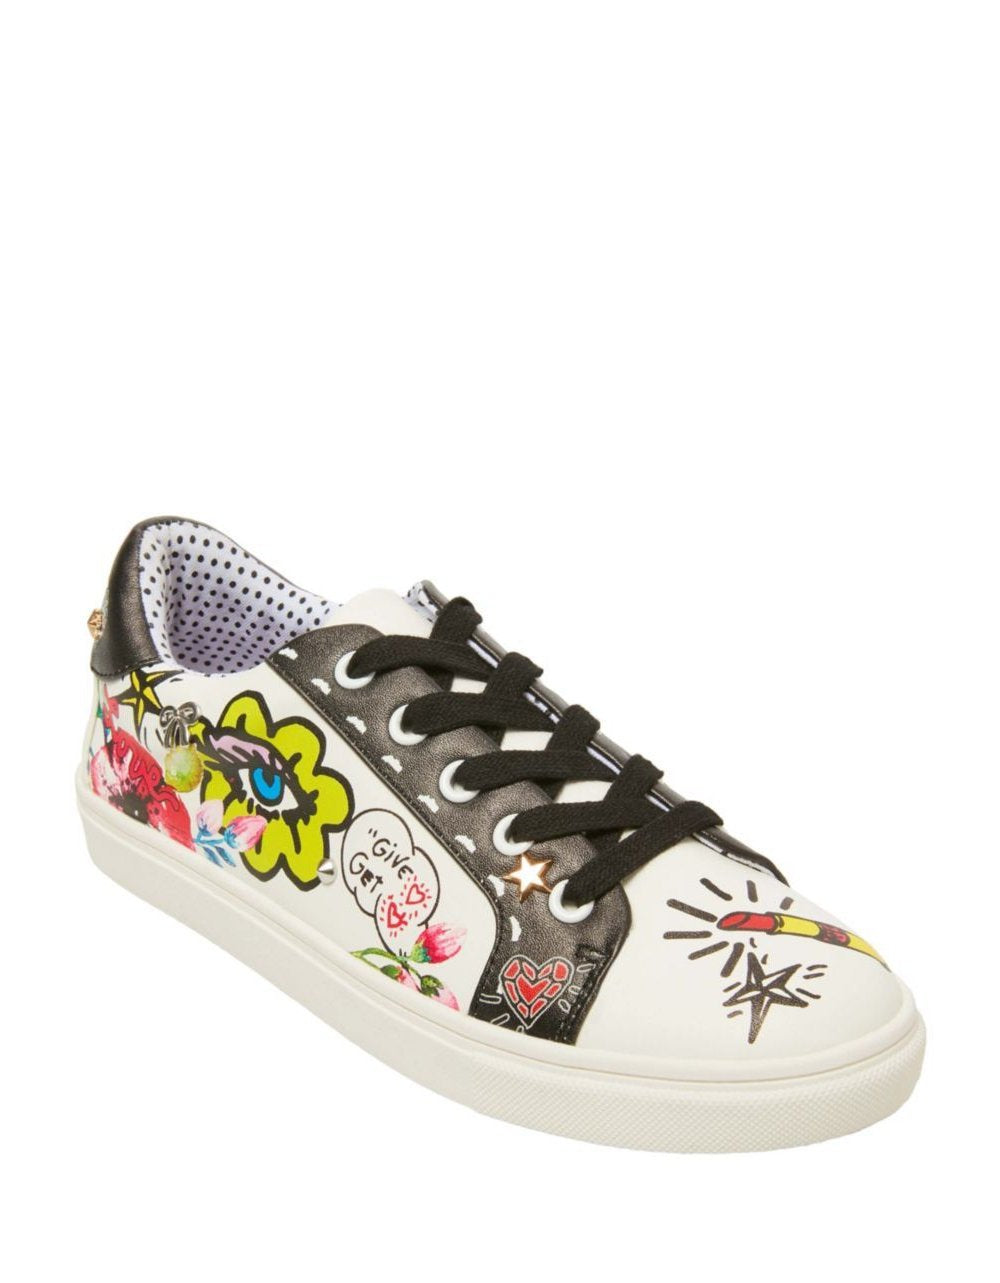 WILLOW WHITE MULTI - SHOES - Betsey Johnson